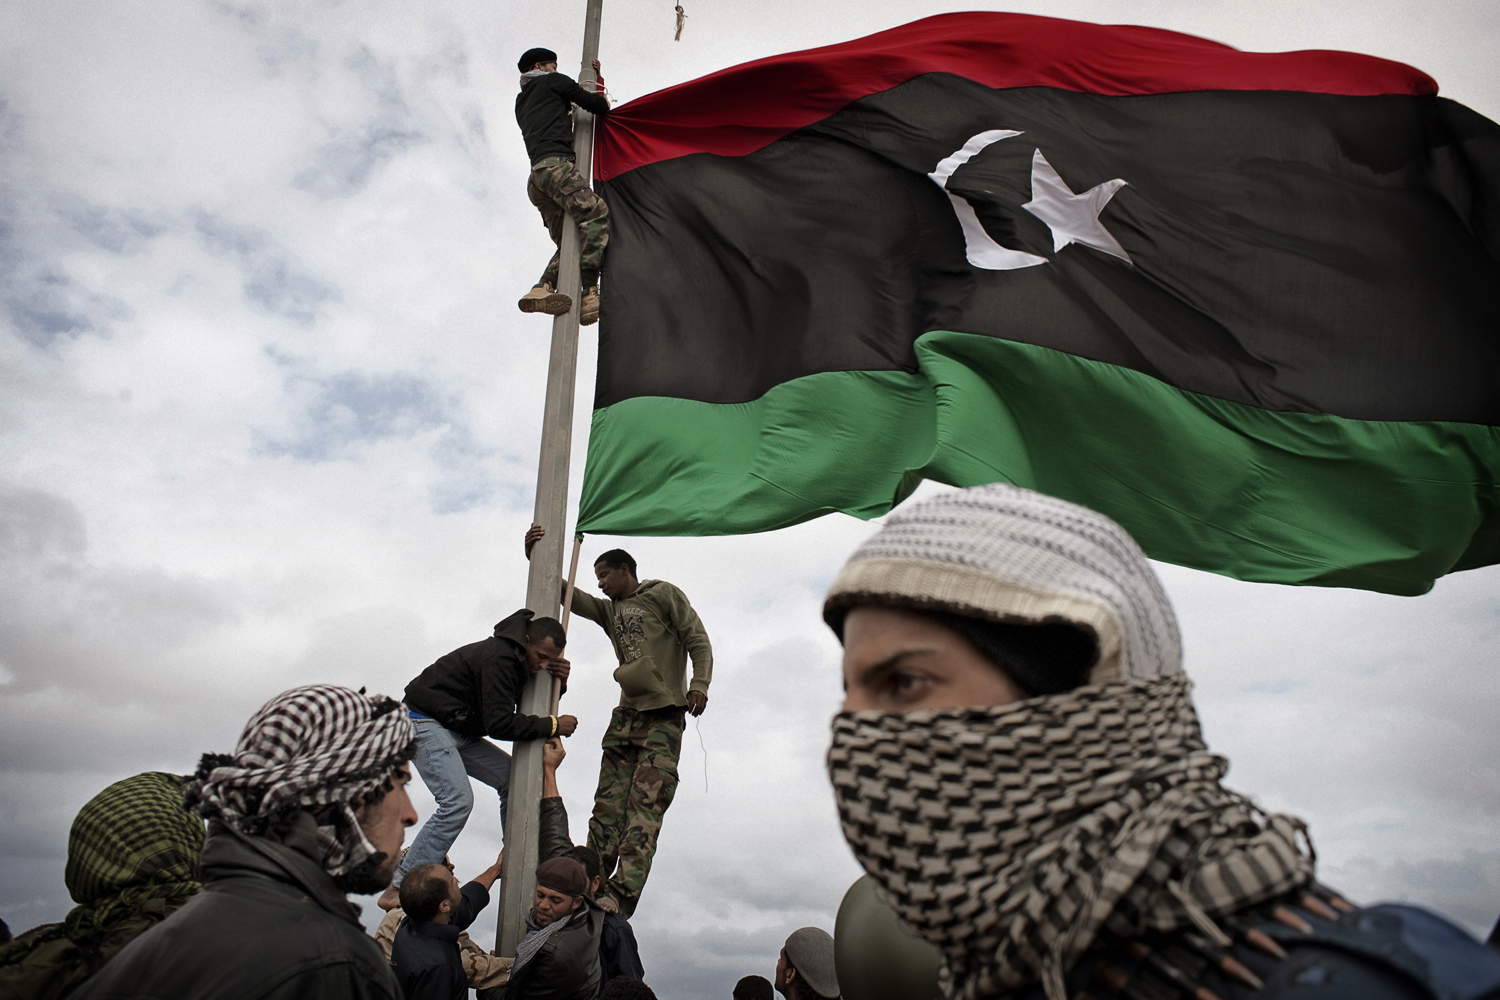 Libyan rebels raise their flag at a checkpoint in Ras Lanuf, March 8, 2011.